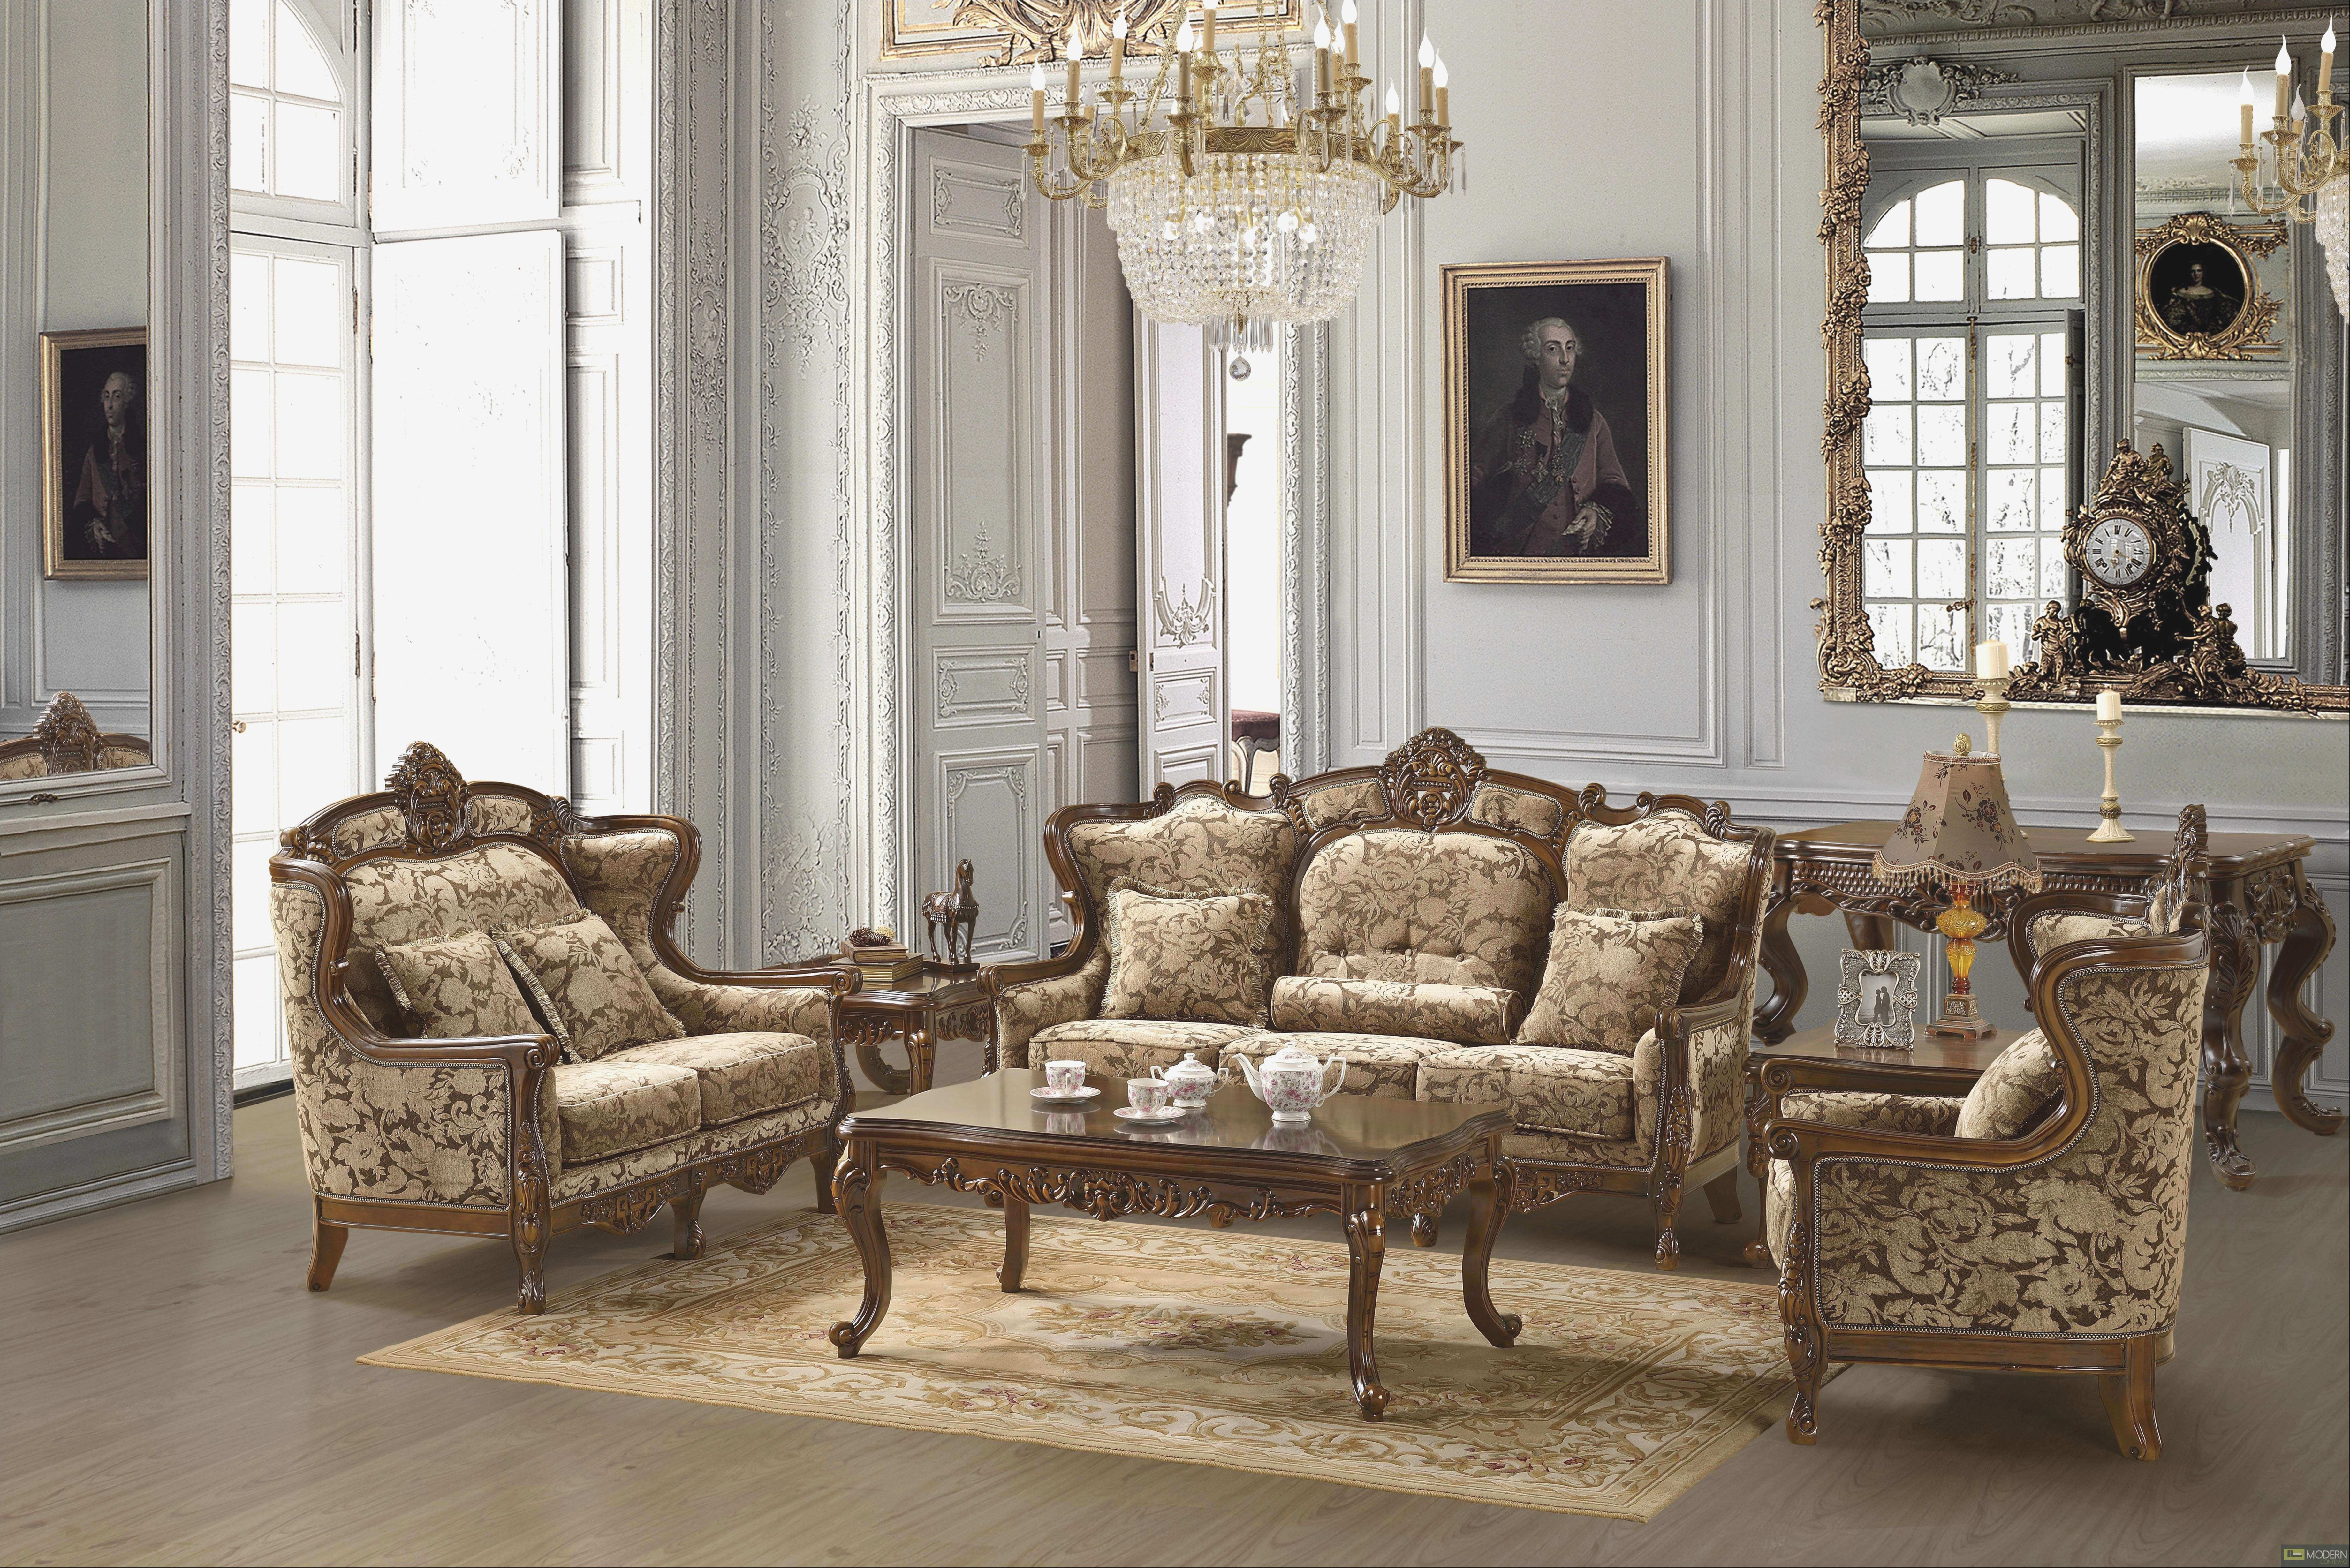 The Best Ideas For Queen Anne Living Room Sets Floor Plan Design throughout Queen Anne Living Room Sets